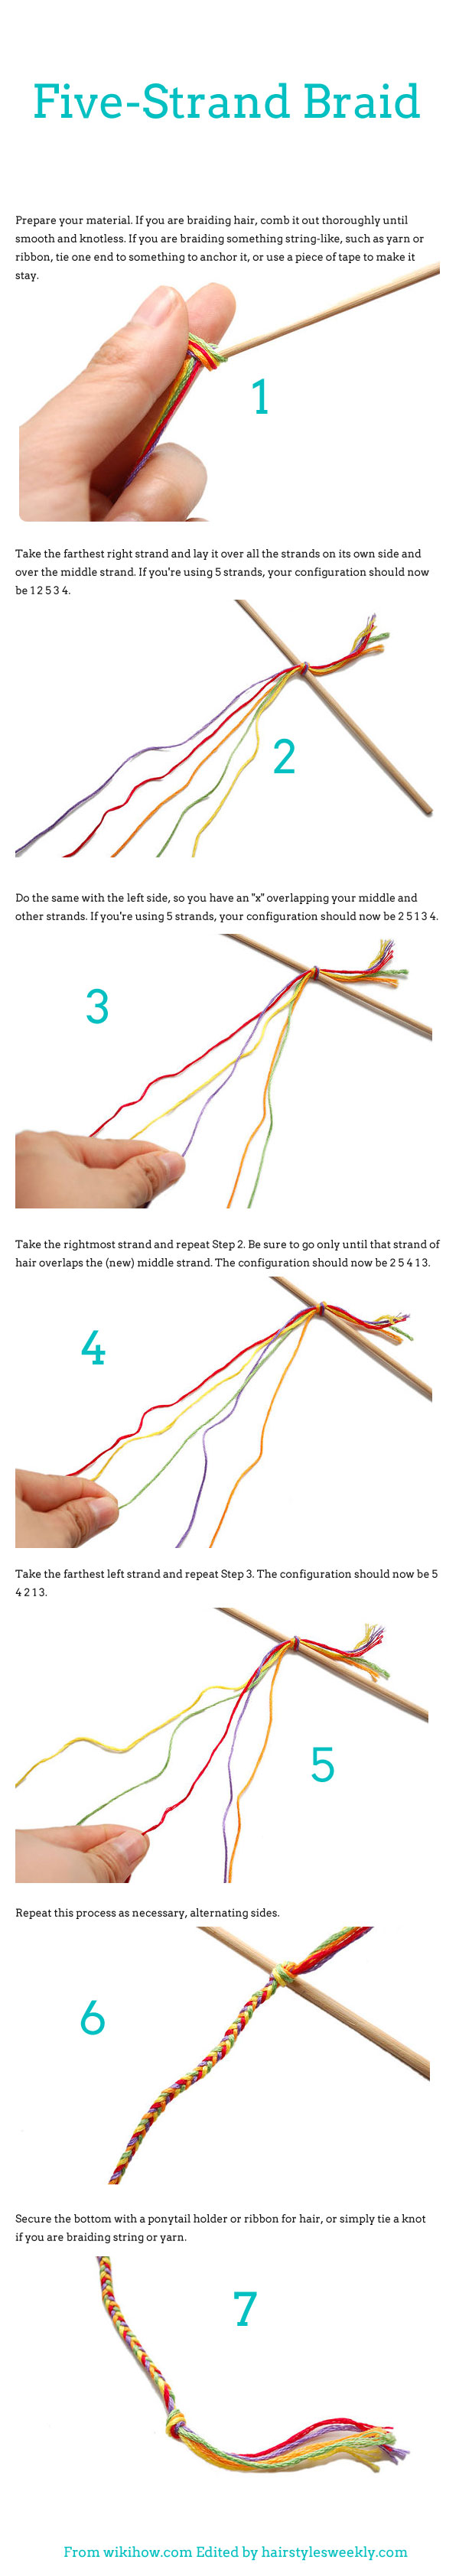 Five-Strand-Braid-how-to